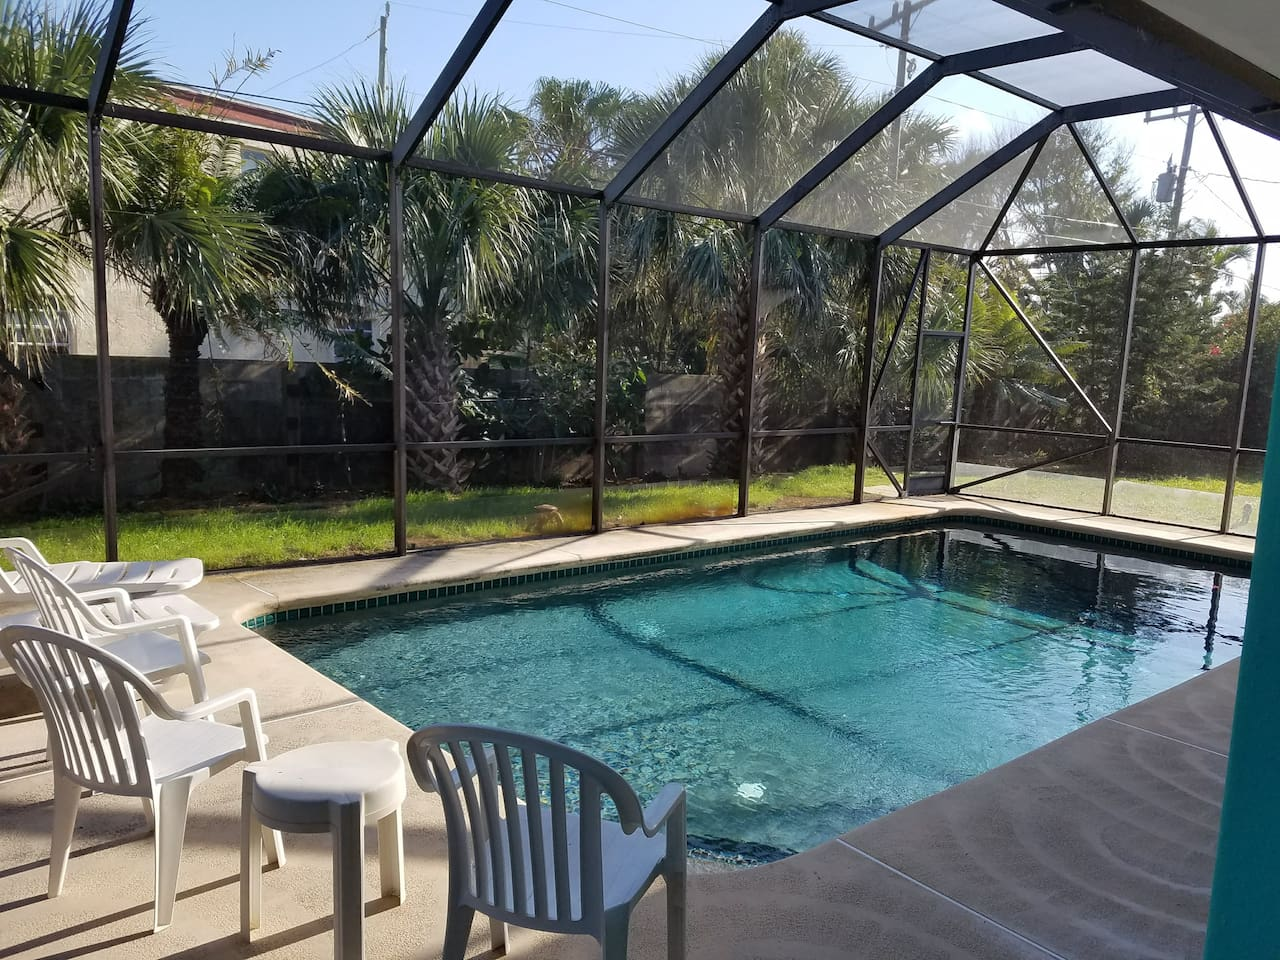 """Screened pool. Across the road from the beach. Watch ocean sunrises from the balcony, bedroom, the dining room. 100 MB WiFi, Netflix, SlingTV. One min. walk to a fun Mex. restaurant and an ice cream shop. You'll love it here at """"The Eagle's Nest!"""" :)"""